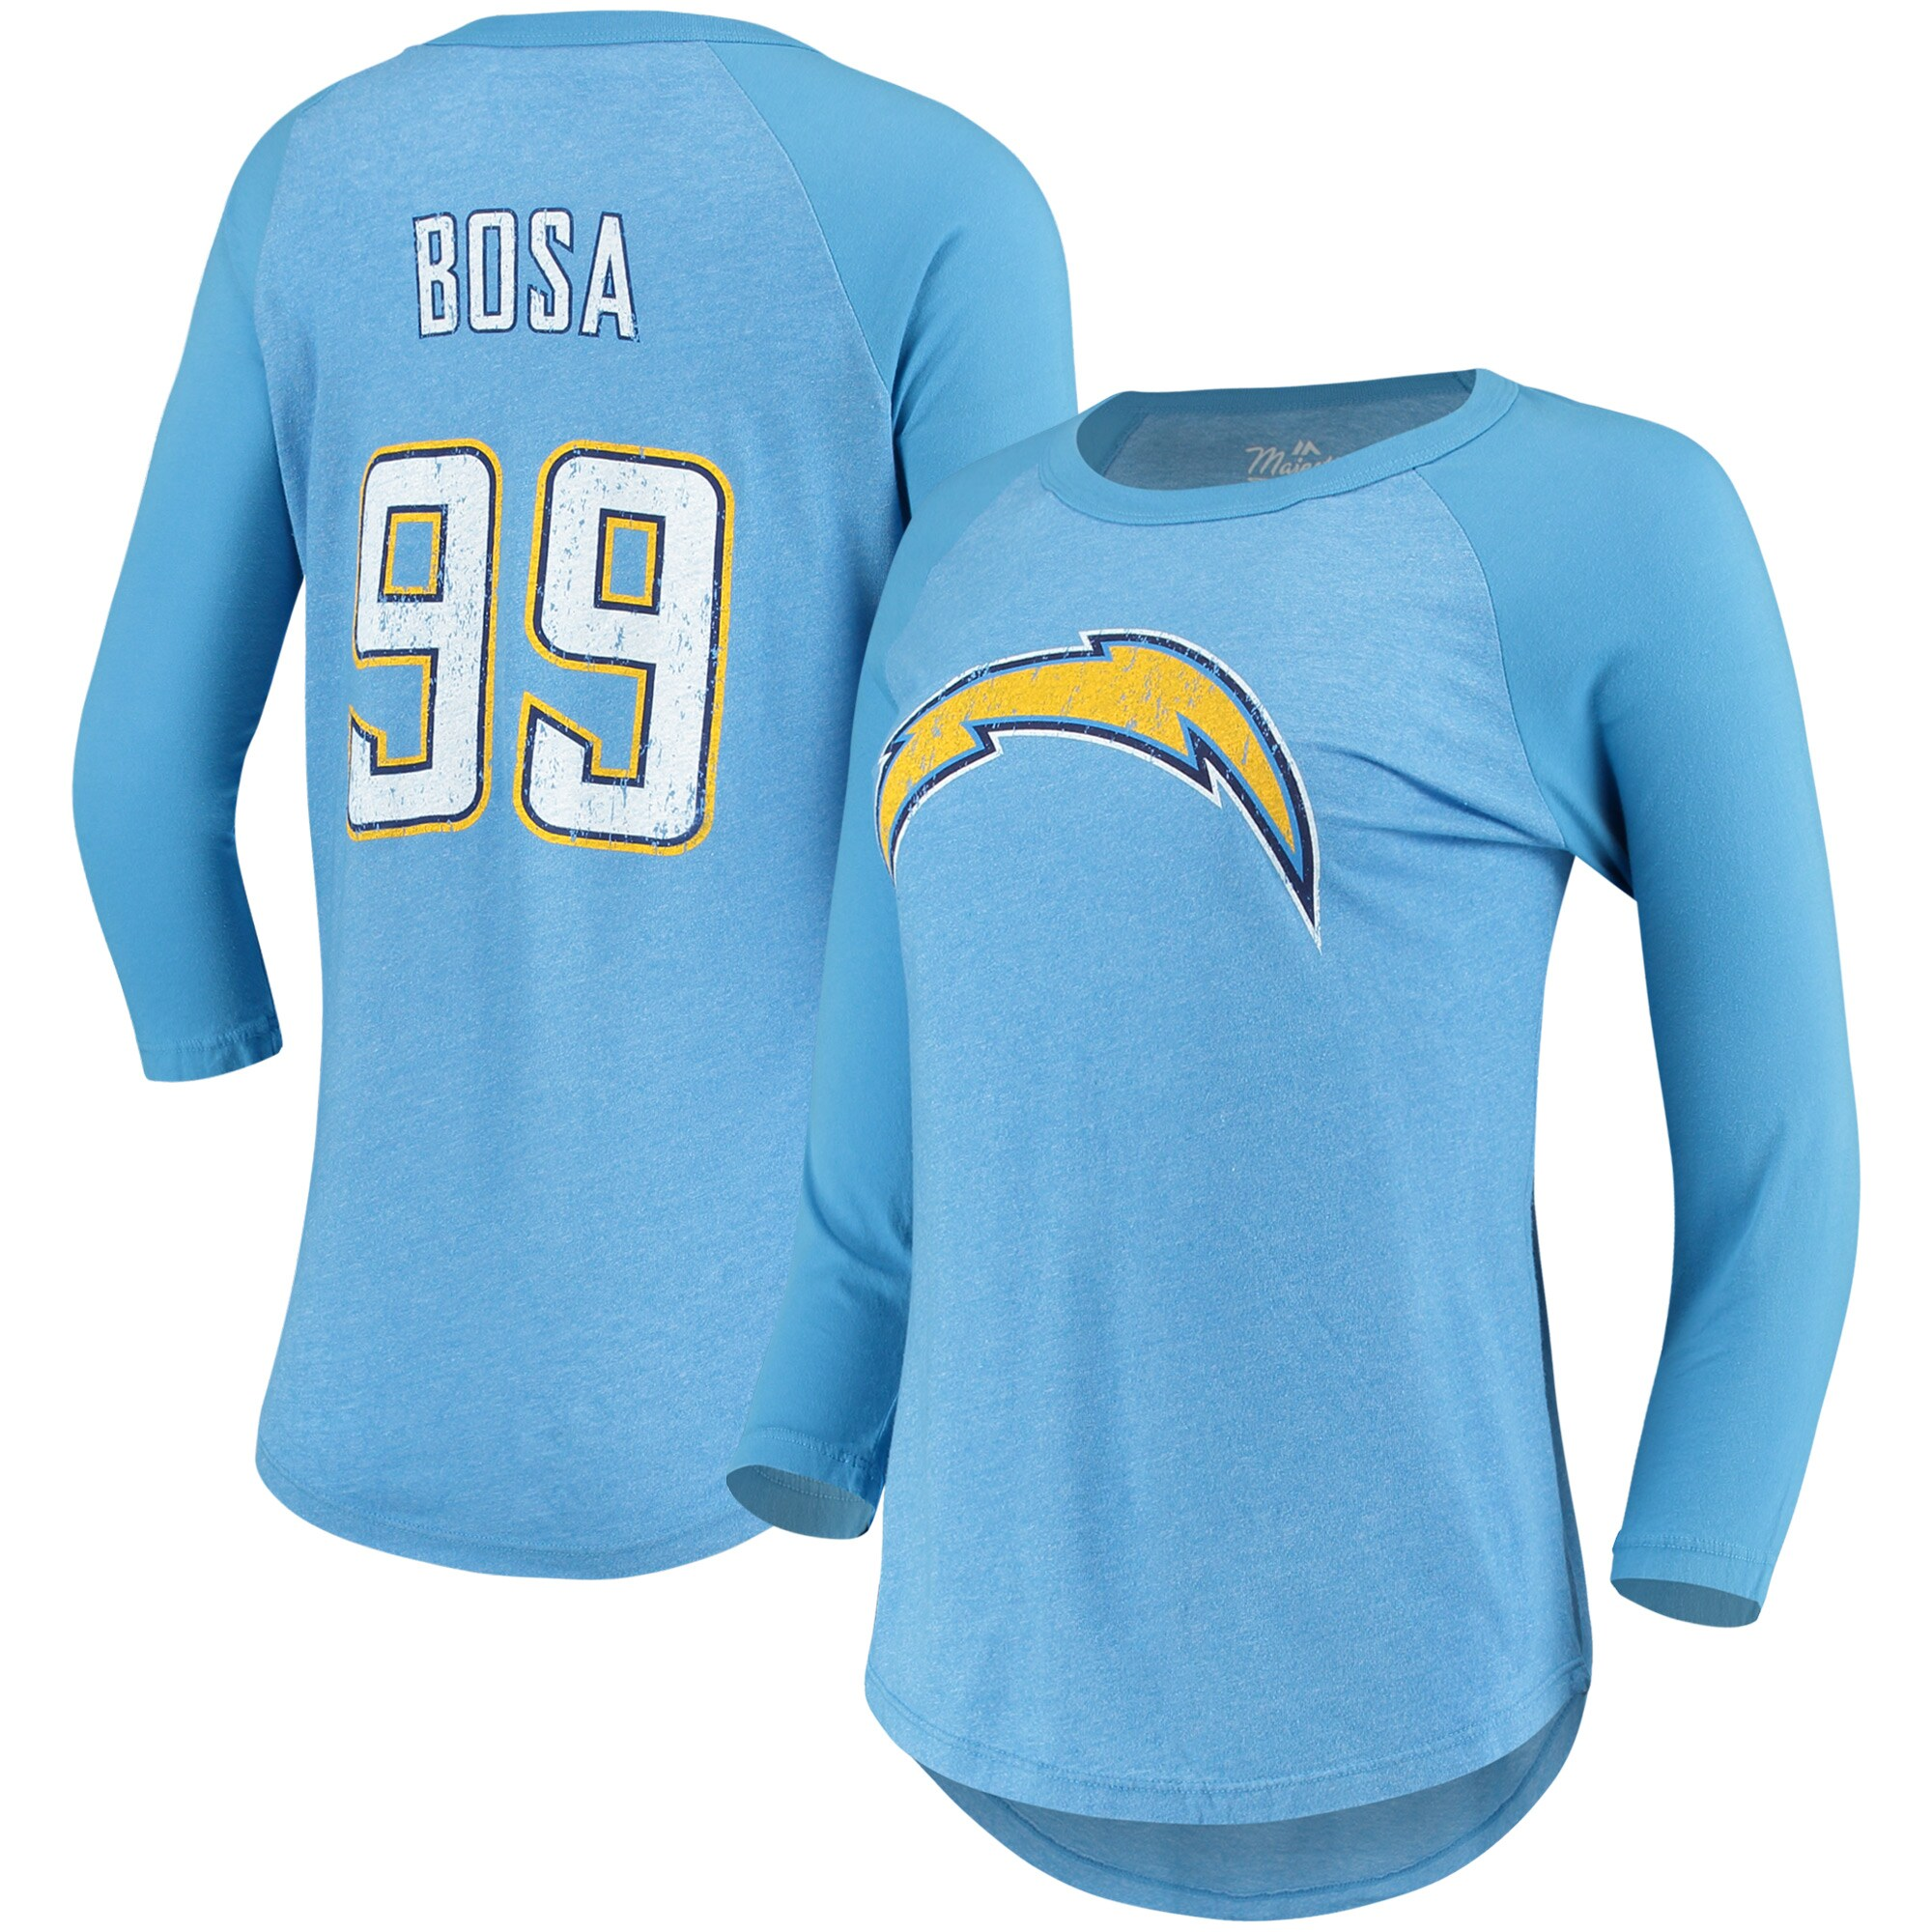 Joey Bosa Los Angeles Chargers Majestic Women's Player Name & Number Tri-Blend Three-Quarter Sleeve T-Shirt - Powder Blue